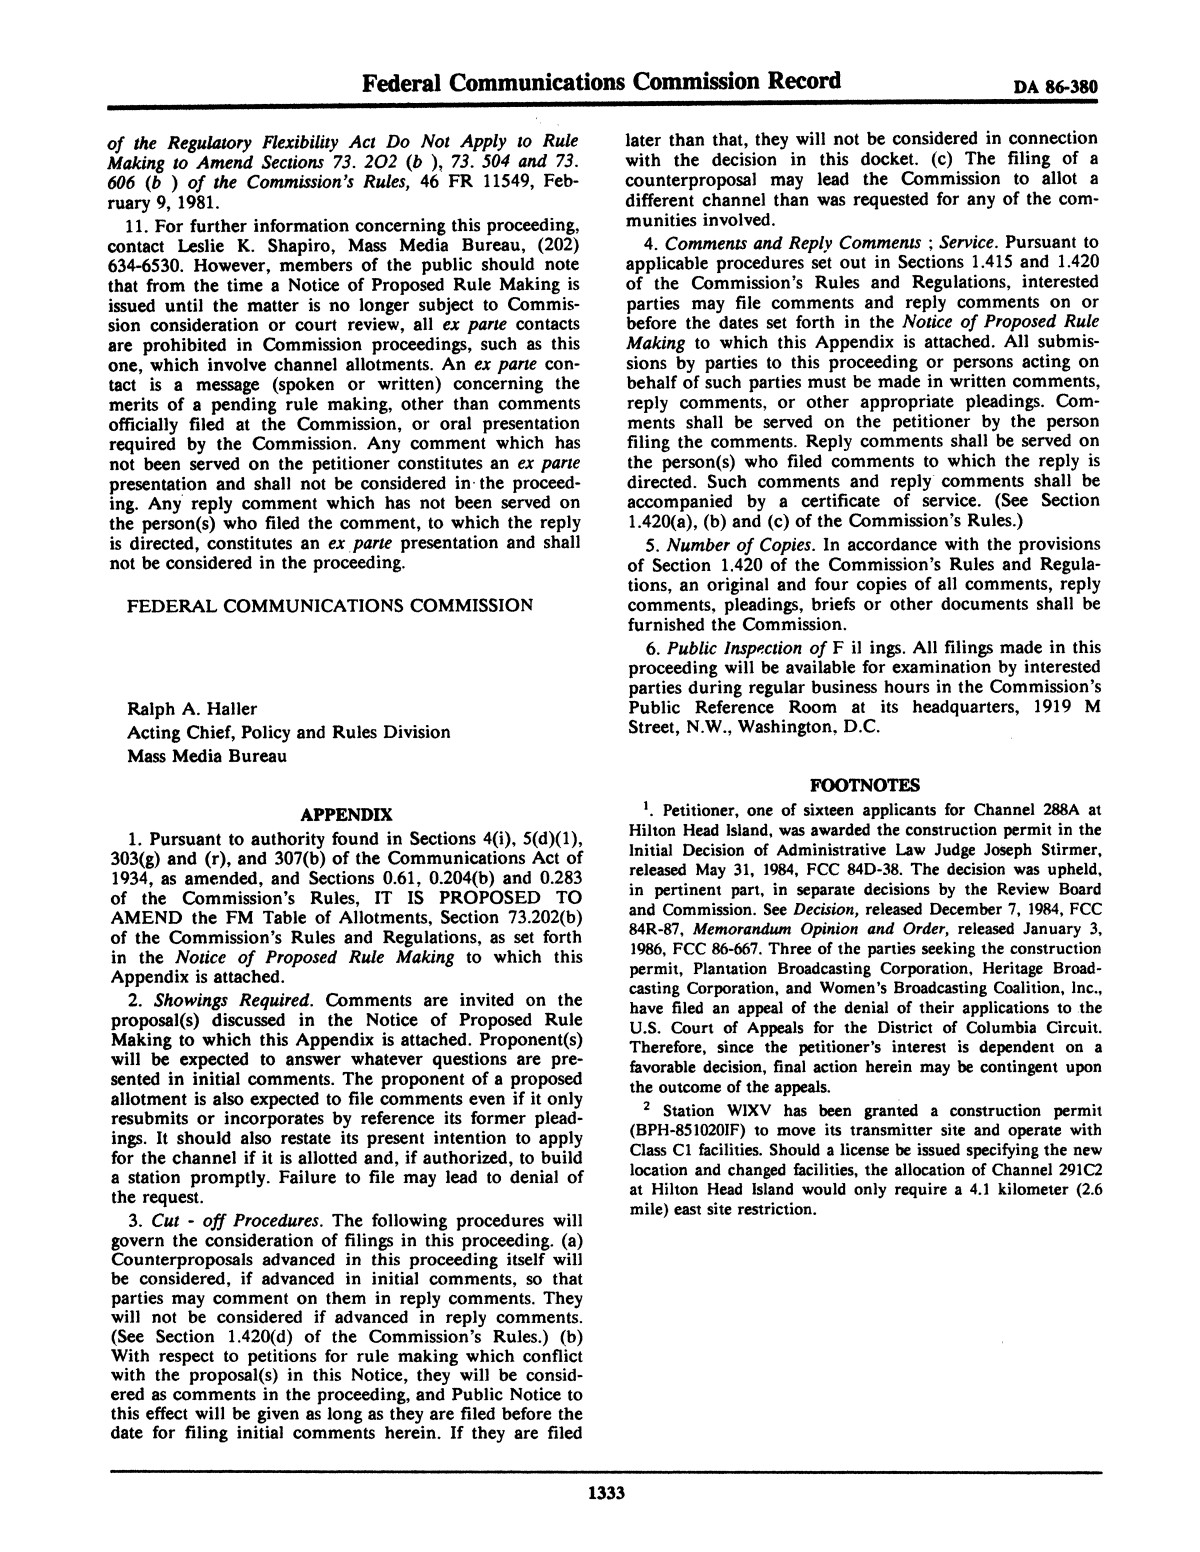 FCC Record, Volume 1, No. 7, Pages 1267 to 1368, December 22, 1986 - January 2, 1987                                                                                                      1333